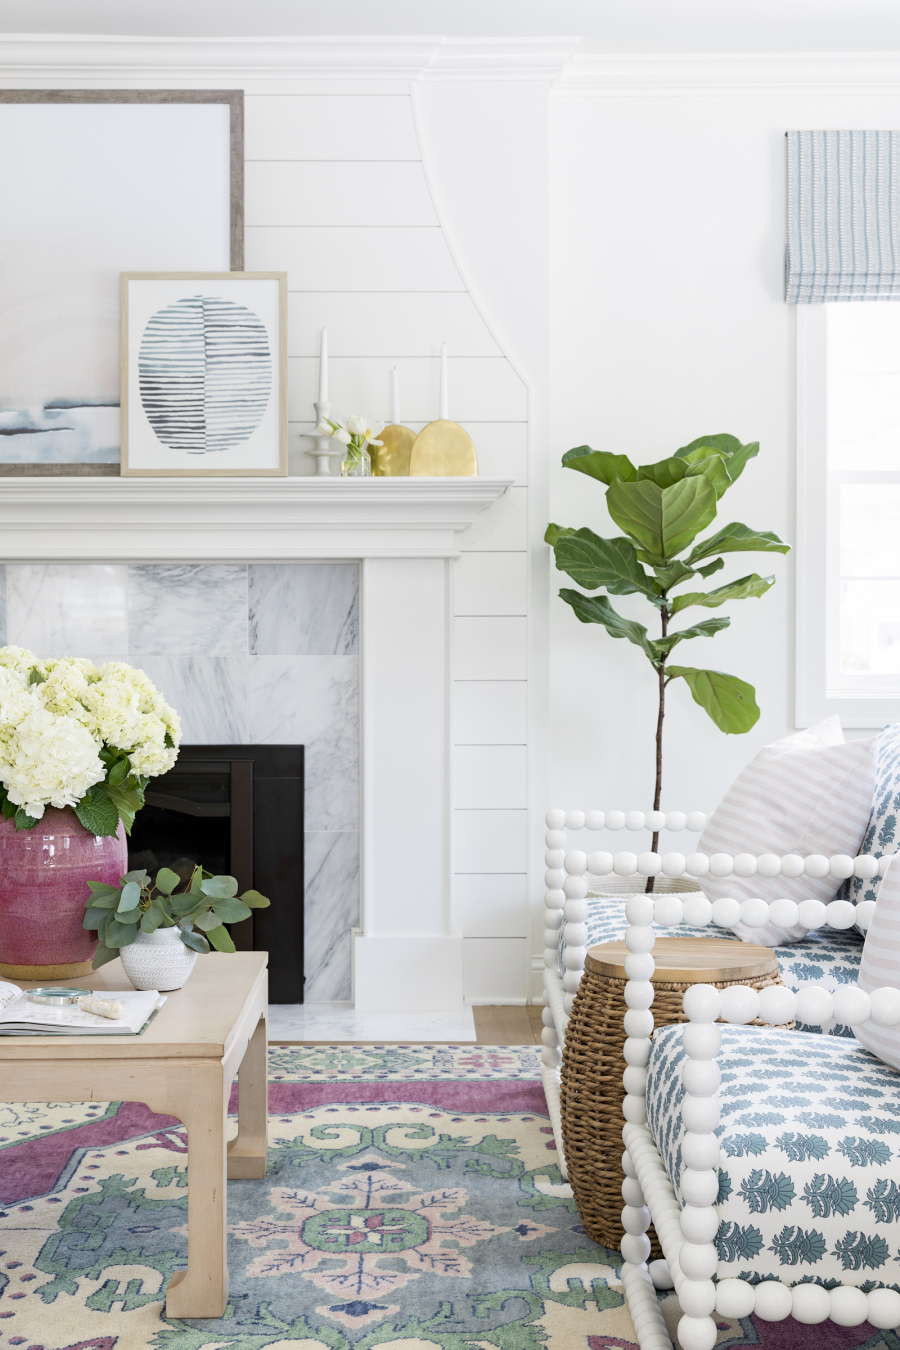 Décor Inspiration: A Minneapolis Home Tour that Mixes Color and ...